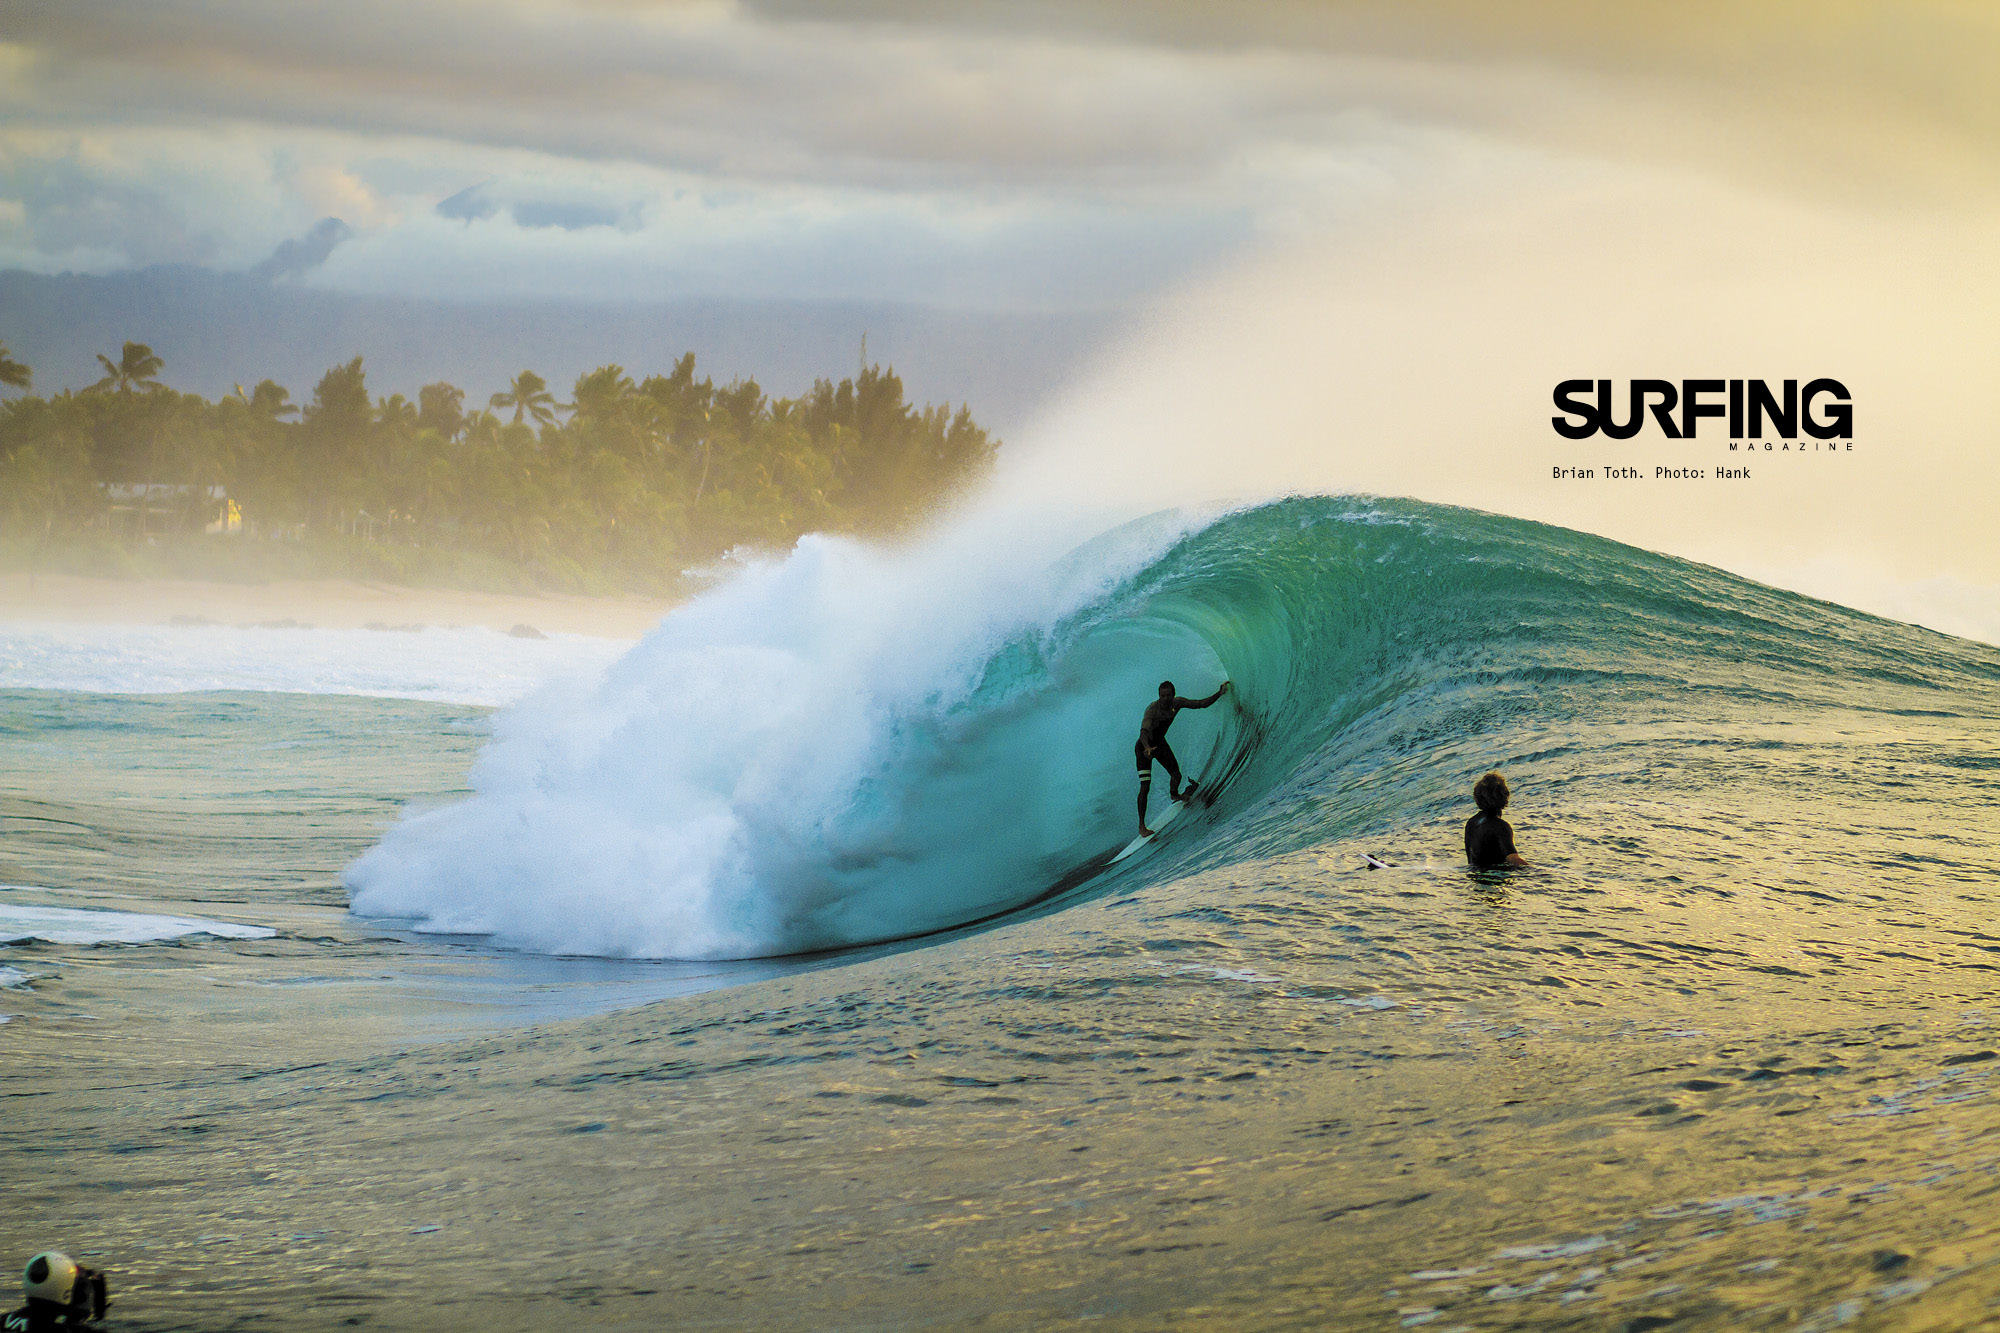 surfing wallpaper: issue 4, 2015 - surfer magazine